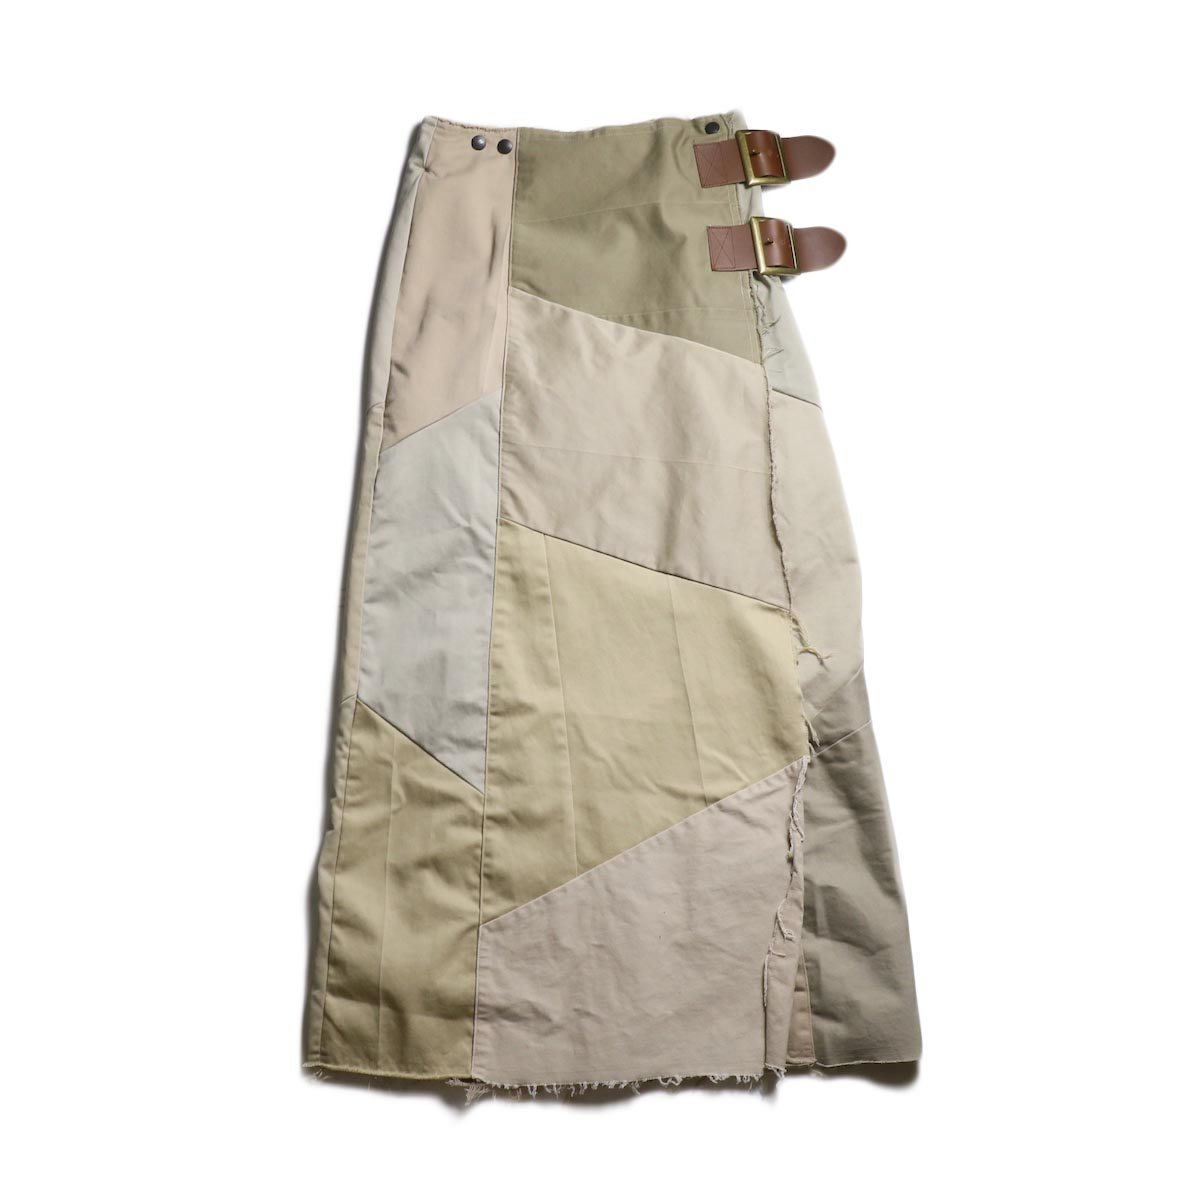 Rebuild by Needles / Chino Pant Wrap Skirt (Khaki)